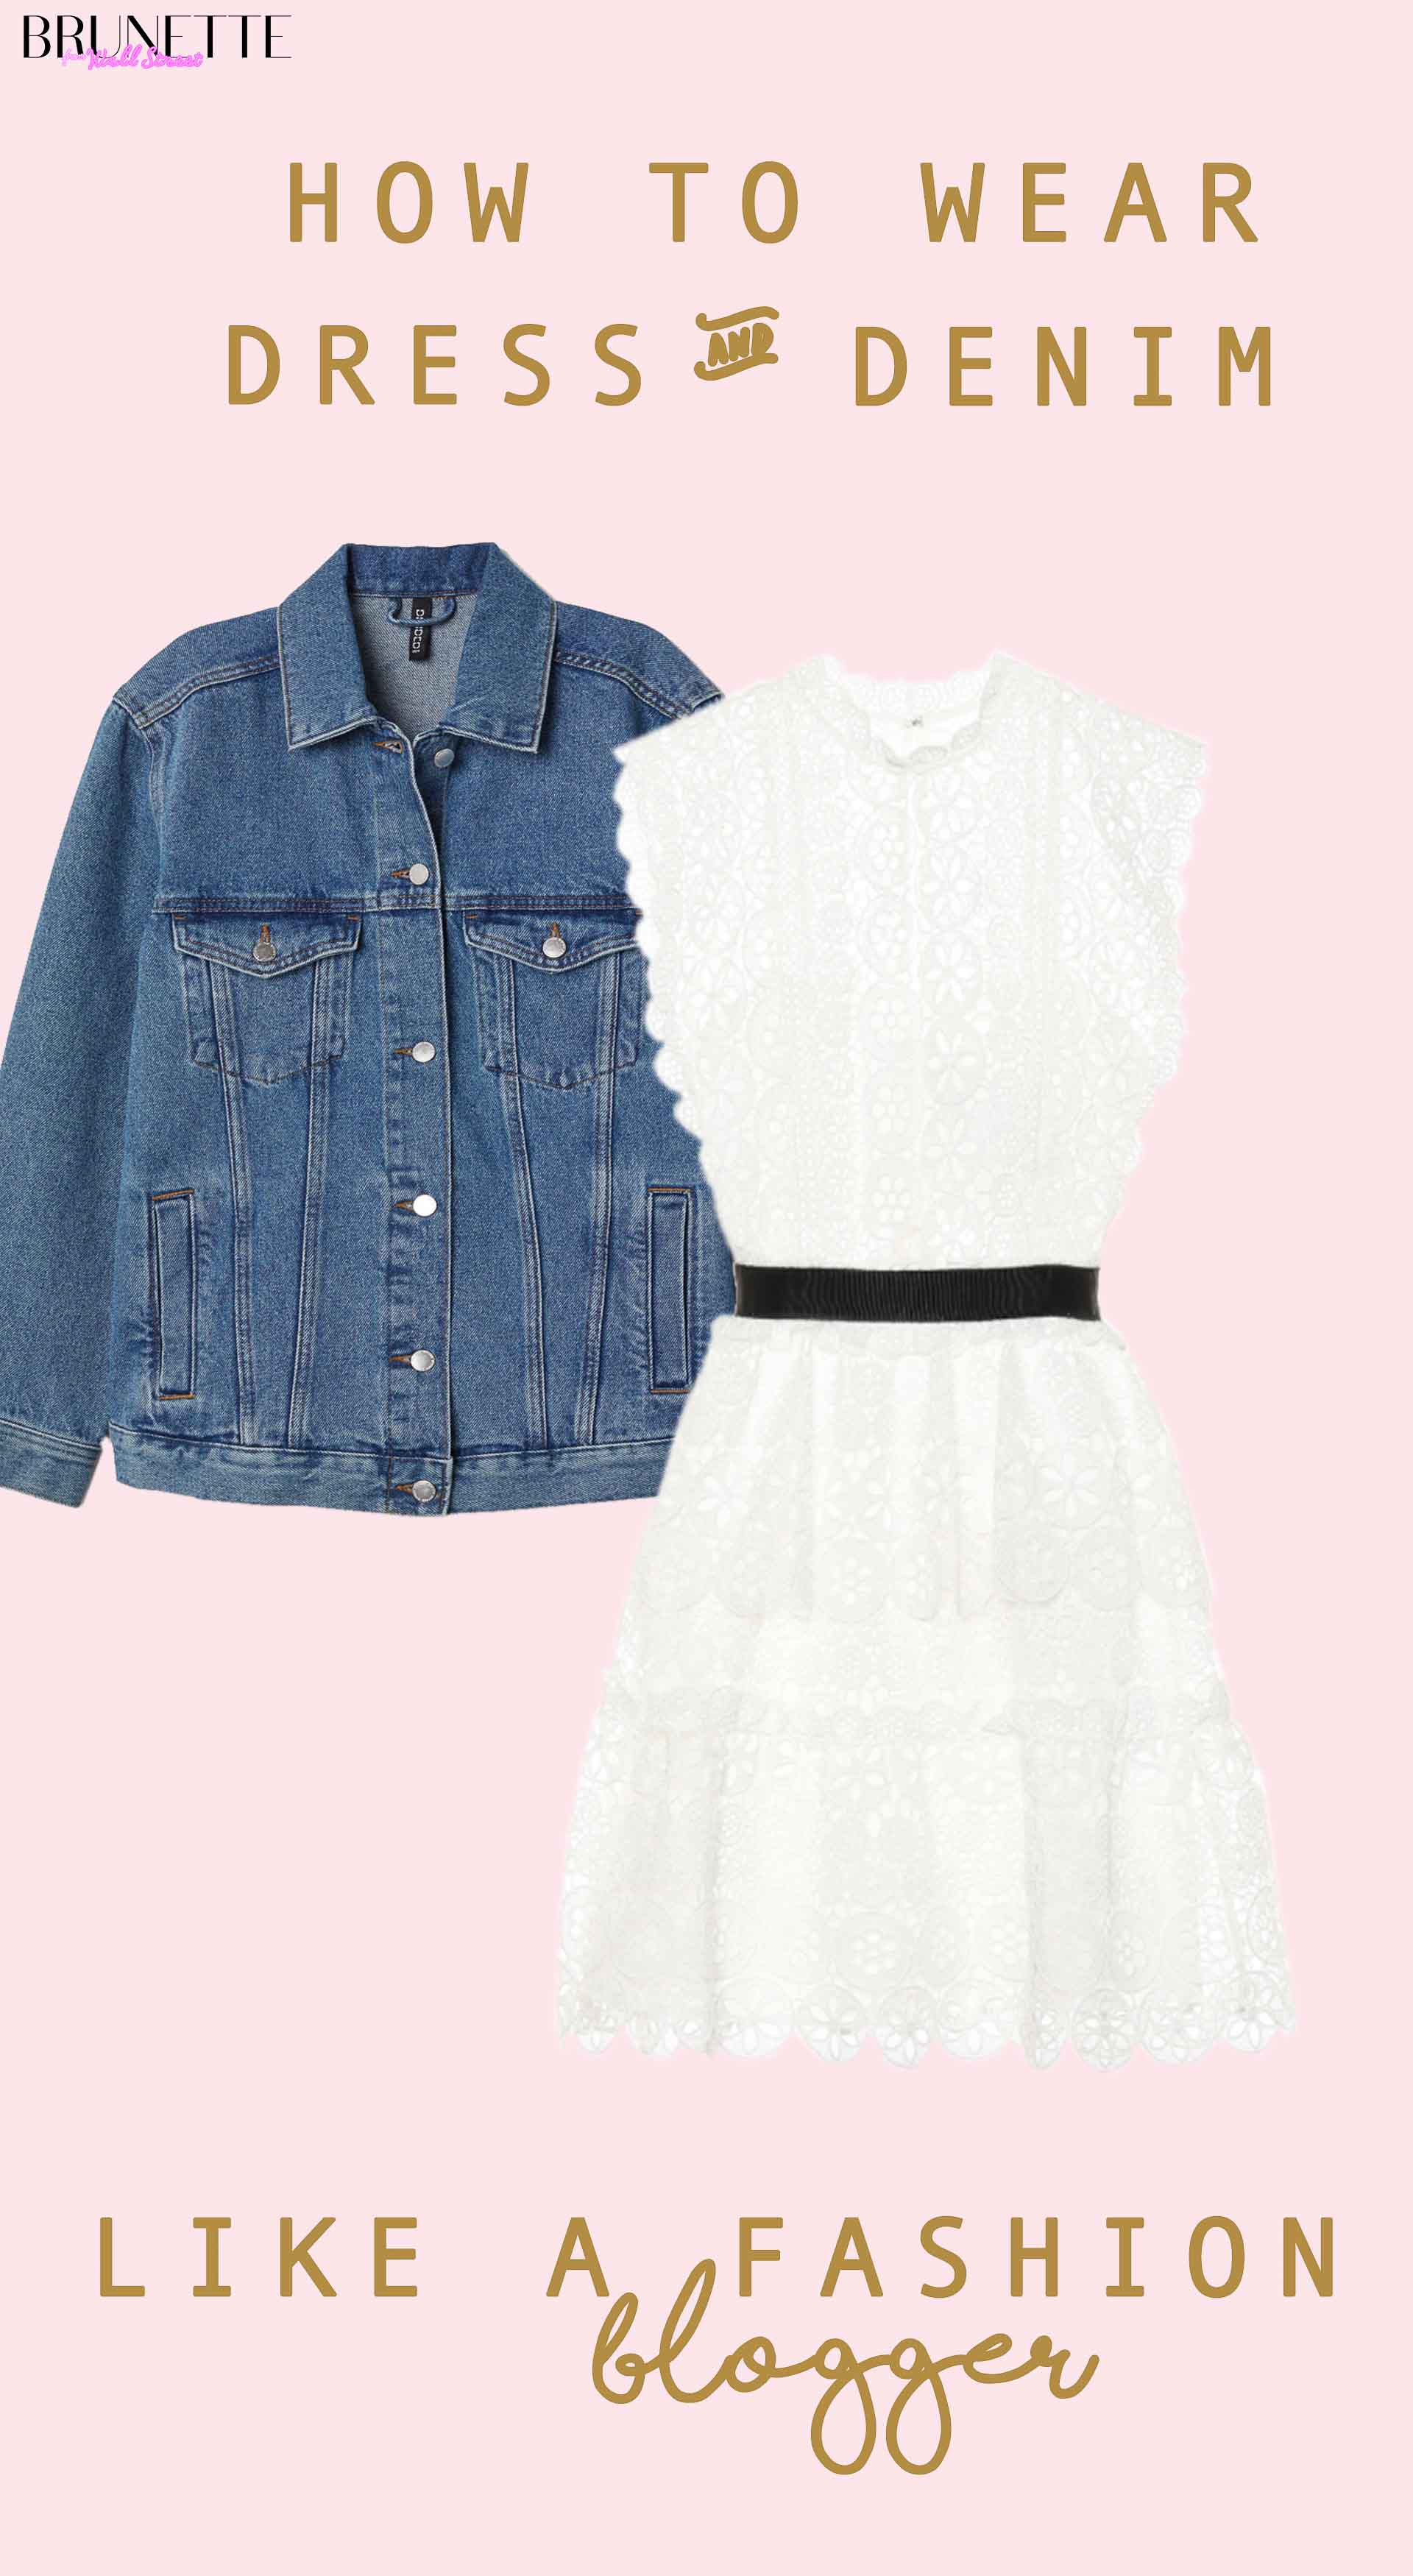 Self-Portrait white short dress, denim jacket with text overlay how to wear white dress and denim jacket like a fashion blogger